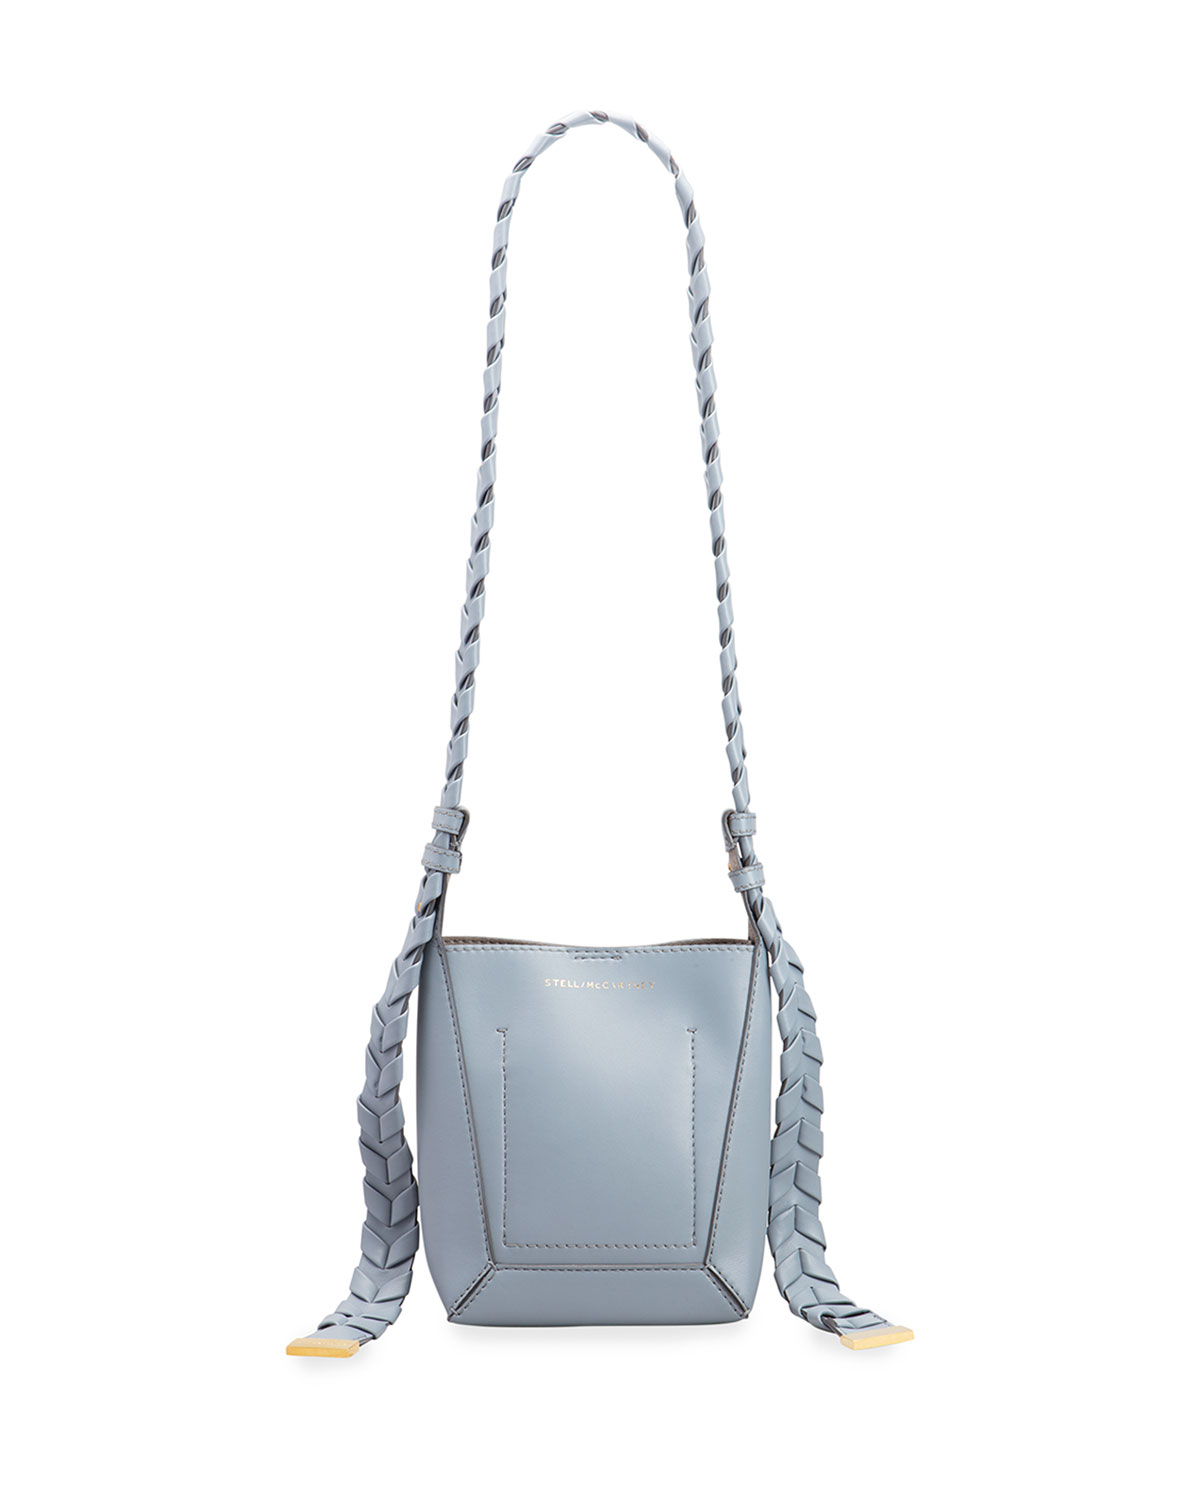 Stella Mccartney SMALL ECO SOFT ALTER NAPA HOBO BAG